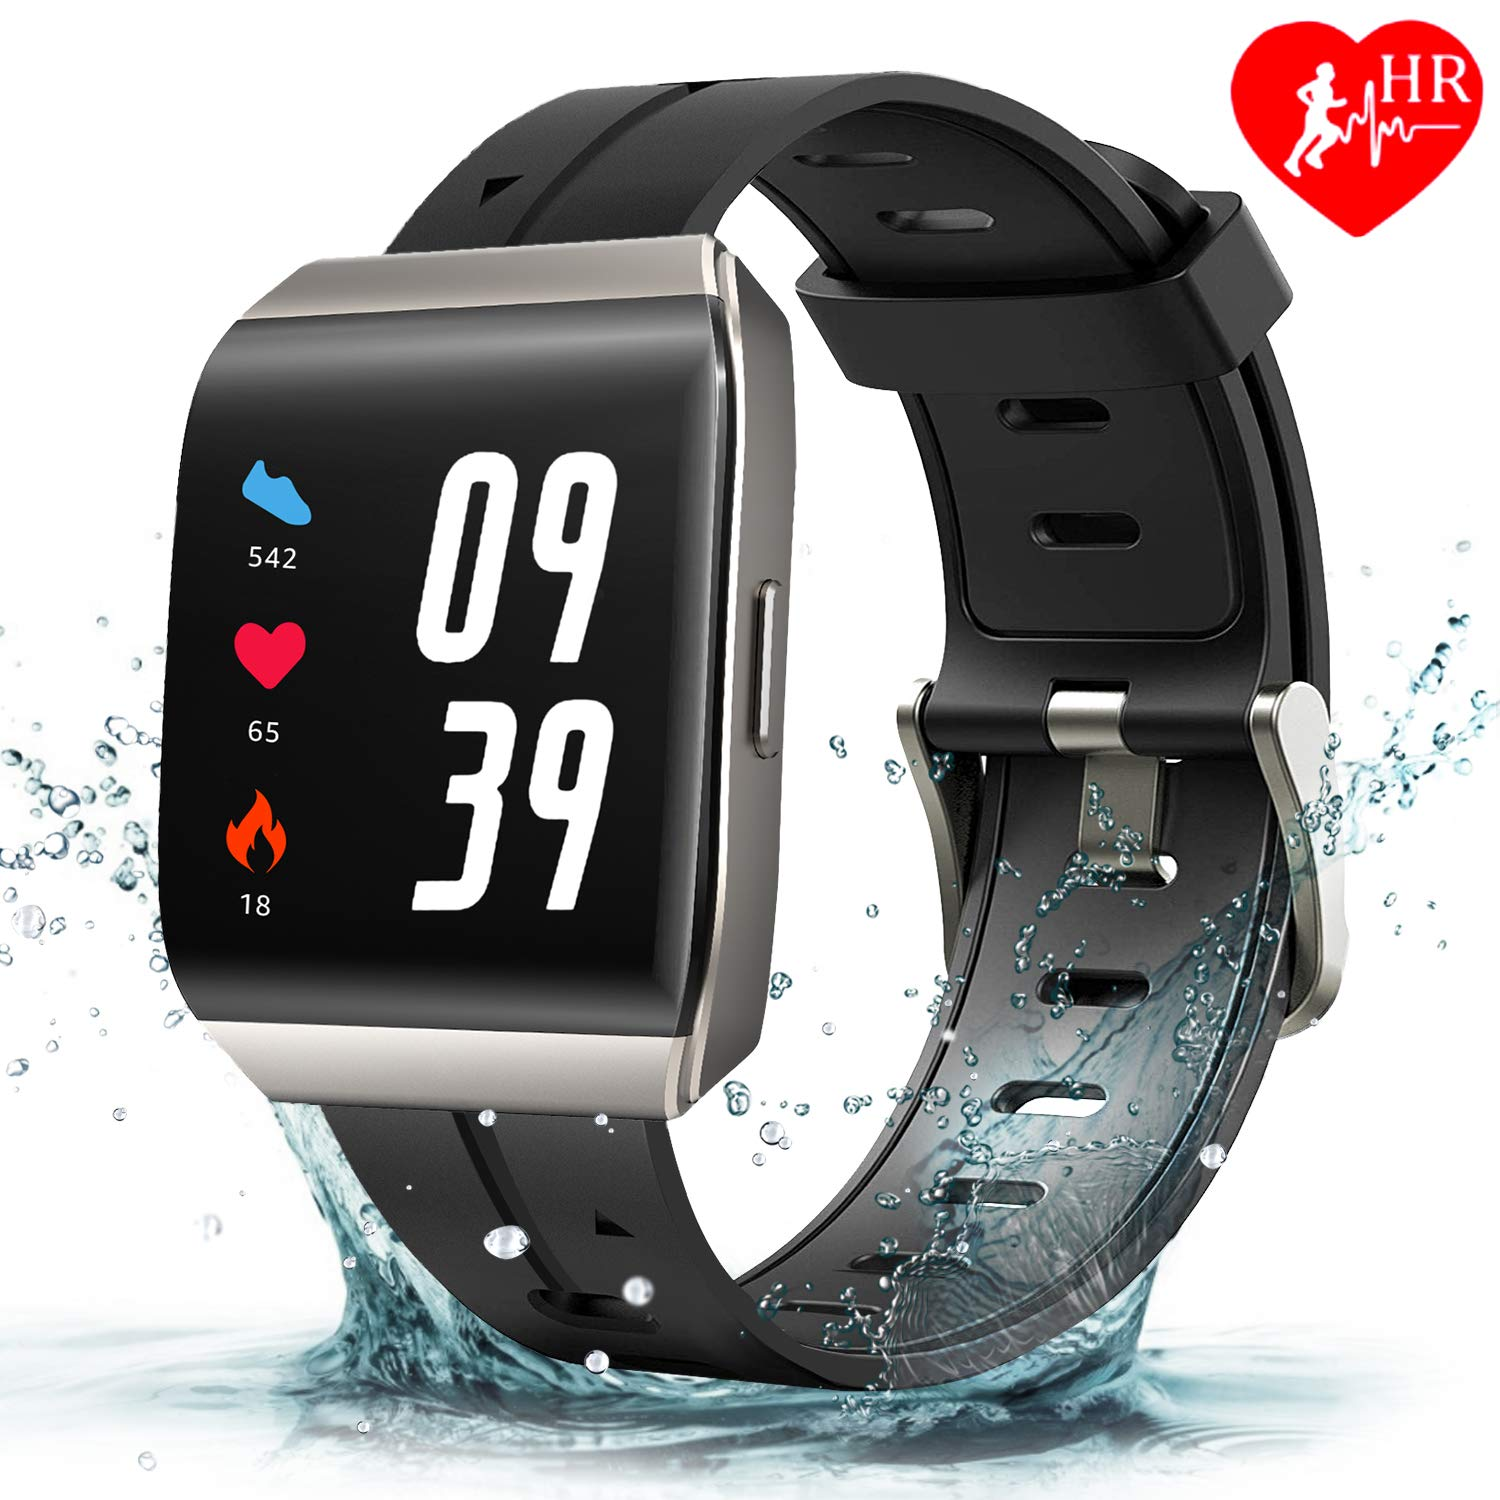 Anthter Fitness Tracker, Activity Tracker 1.3 Color Screen Fitness Watch with Heart Rate Blood Pressure Sleep Monitor, IP68 Waterproof Smart Watch, Step Calorie Counter Pedometer for Kids Women Men